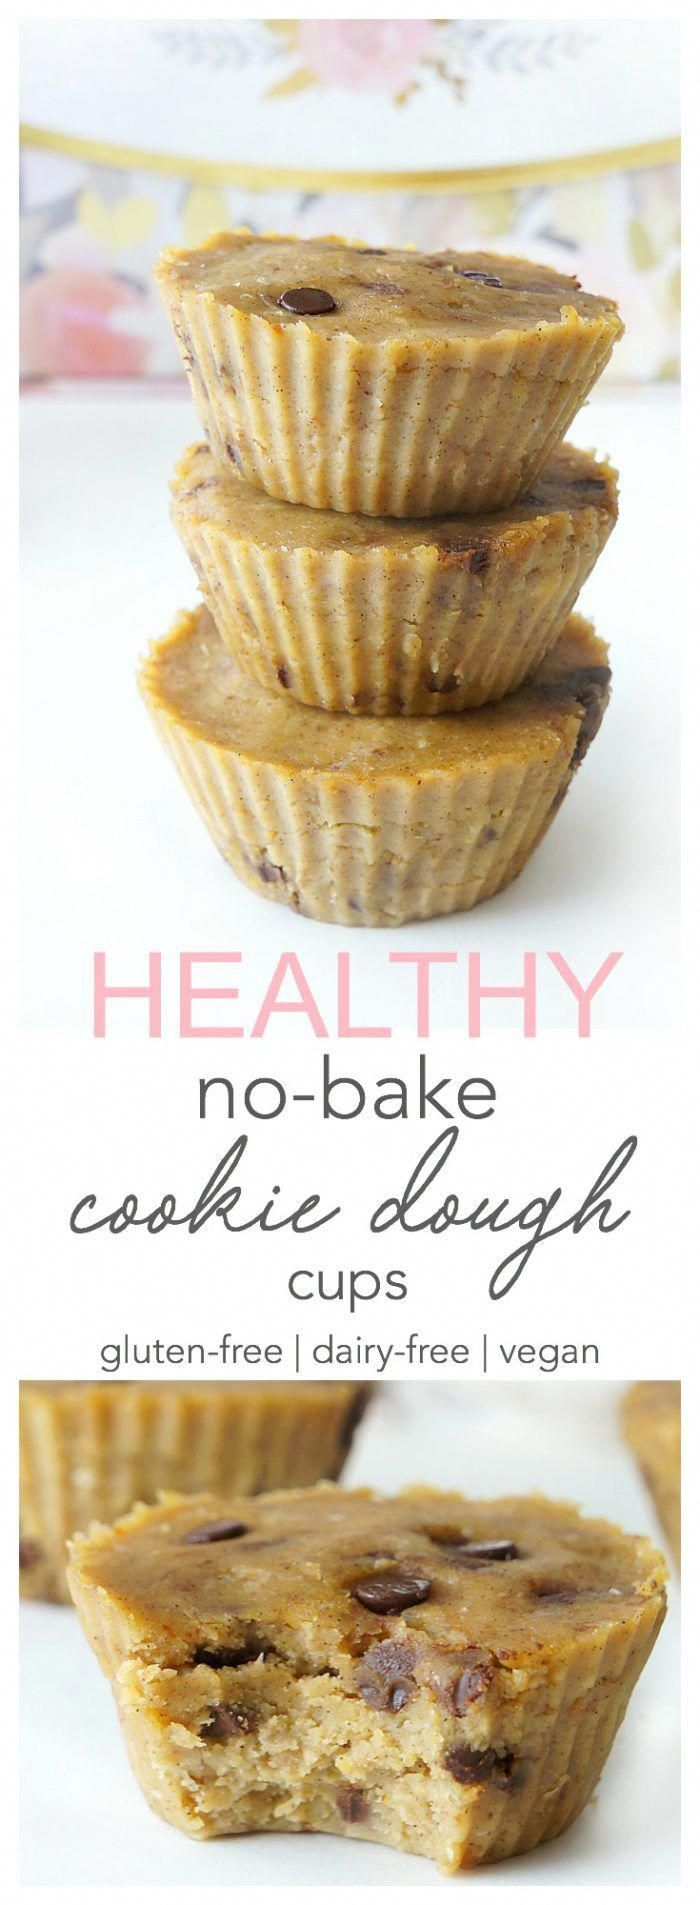 These healthy no-bake cookie dough cups make a delicious and nutritious treat or snack on the go (great for pre or post workout)! They�re a good source of protein and fibre and are also vegan, gluten-free and dairy-free!   Haute & Healthy Living